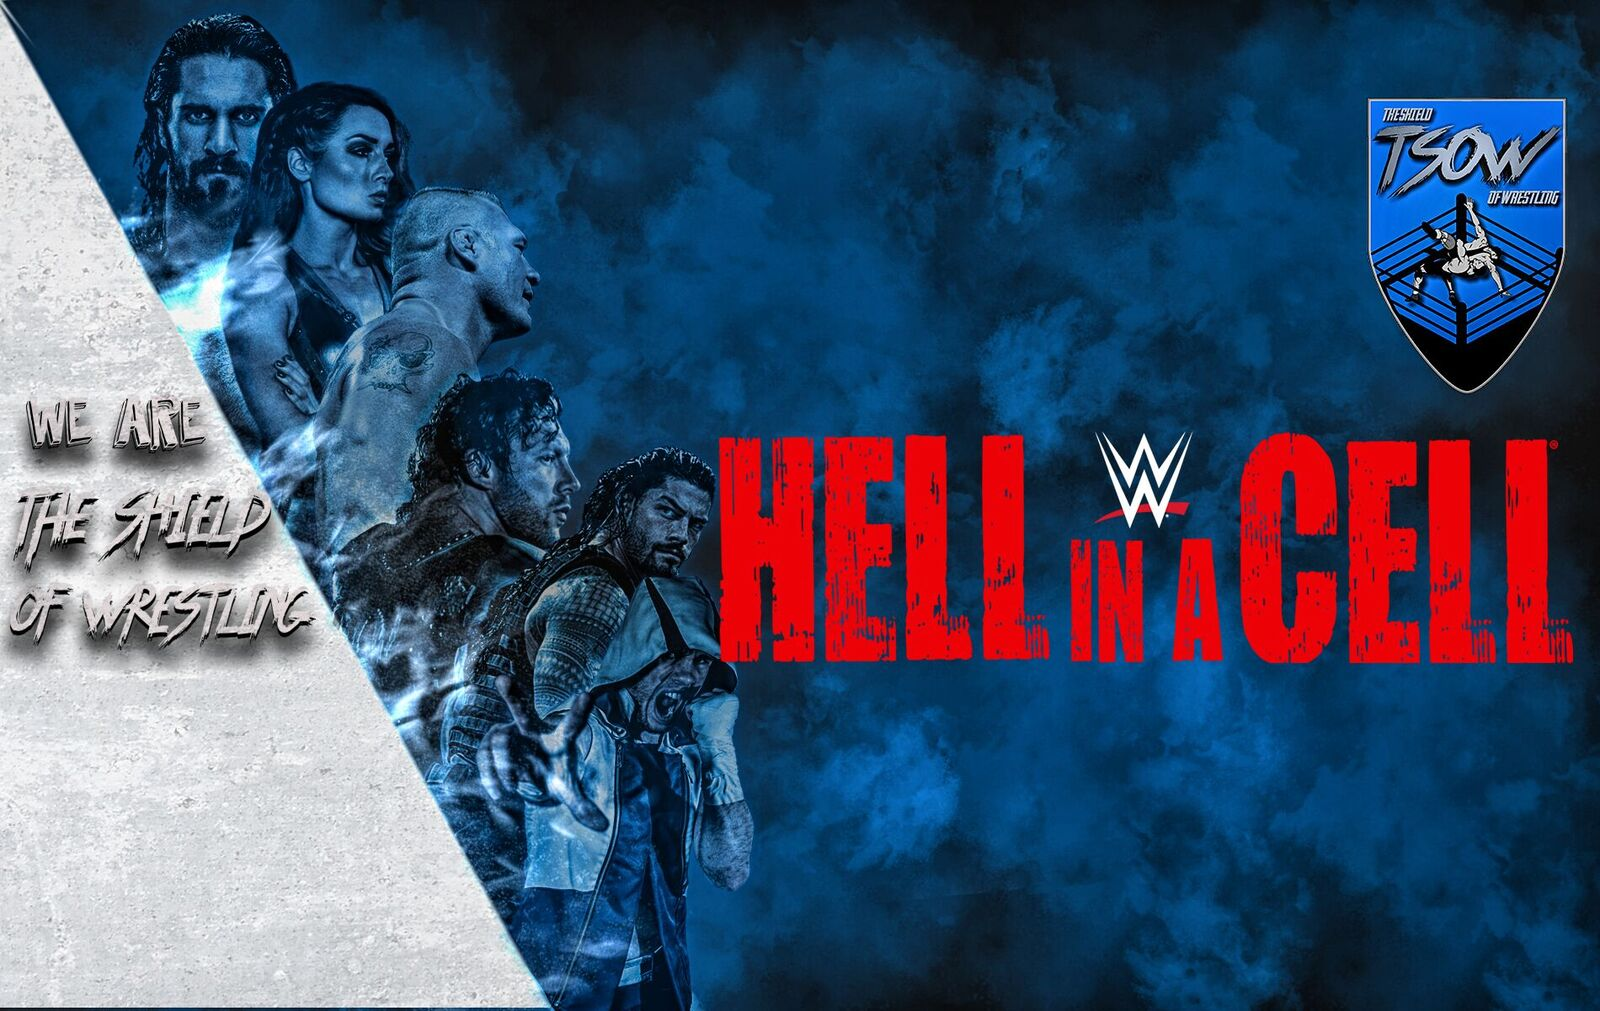 Hell in a cell preview